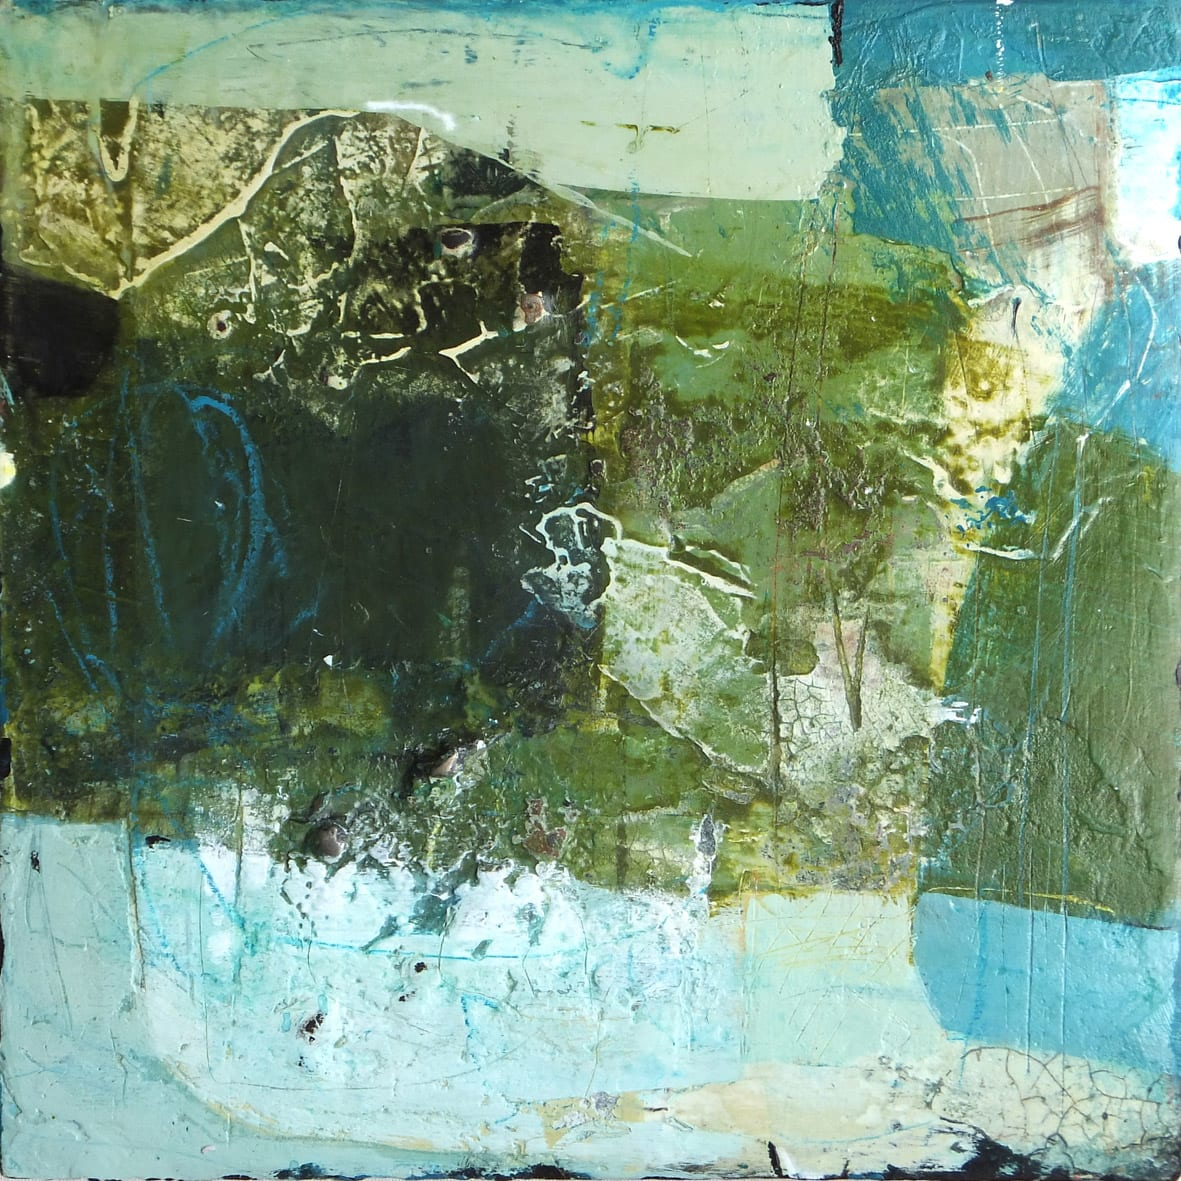 """<span class=""""link fancybox-details-link""""><a href=""""/store/artworks/7766-joanne-last-colours-of-cornwall-4-2021/"""">View Detail Page</a></span><div class=""""artist""""><strong>Joanne Last</strong></div> <div class=""""title""""><em>Colours of Cornwall 4</em>, 2021</div> <div class=""""signed_and_dated"""">signed and dated on verso</div> <div class=""""medium"""">acrylic on board</div> <div class=""""dimensions"""">board: 30 x 30 cm<br /> framed: 41 x 41 cm</div><div class=""""price"""">£650.00</div><div class=""""copyright_line"""">Own Art: £65 x 10 Months, 0% APR + £10 deposit</div>"""